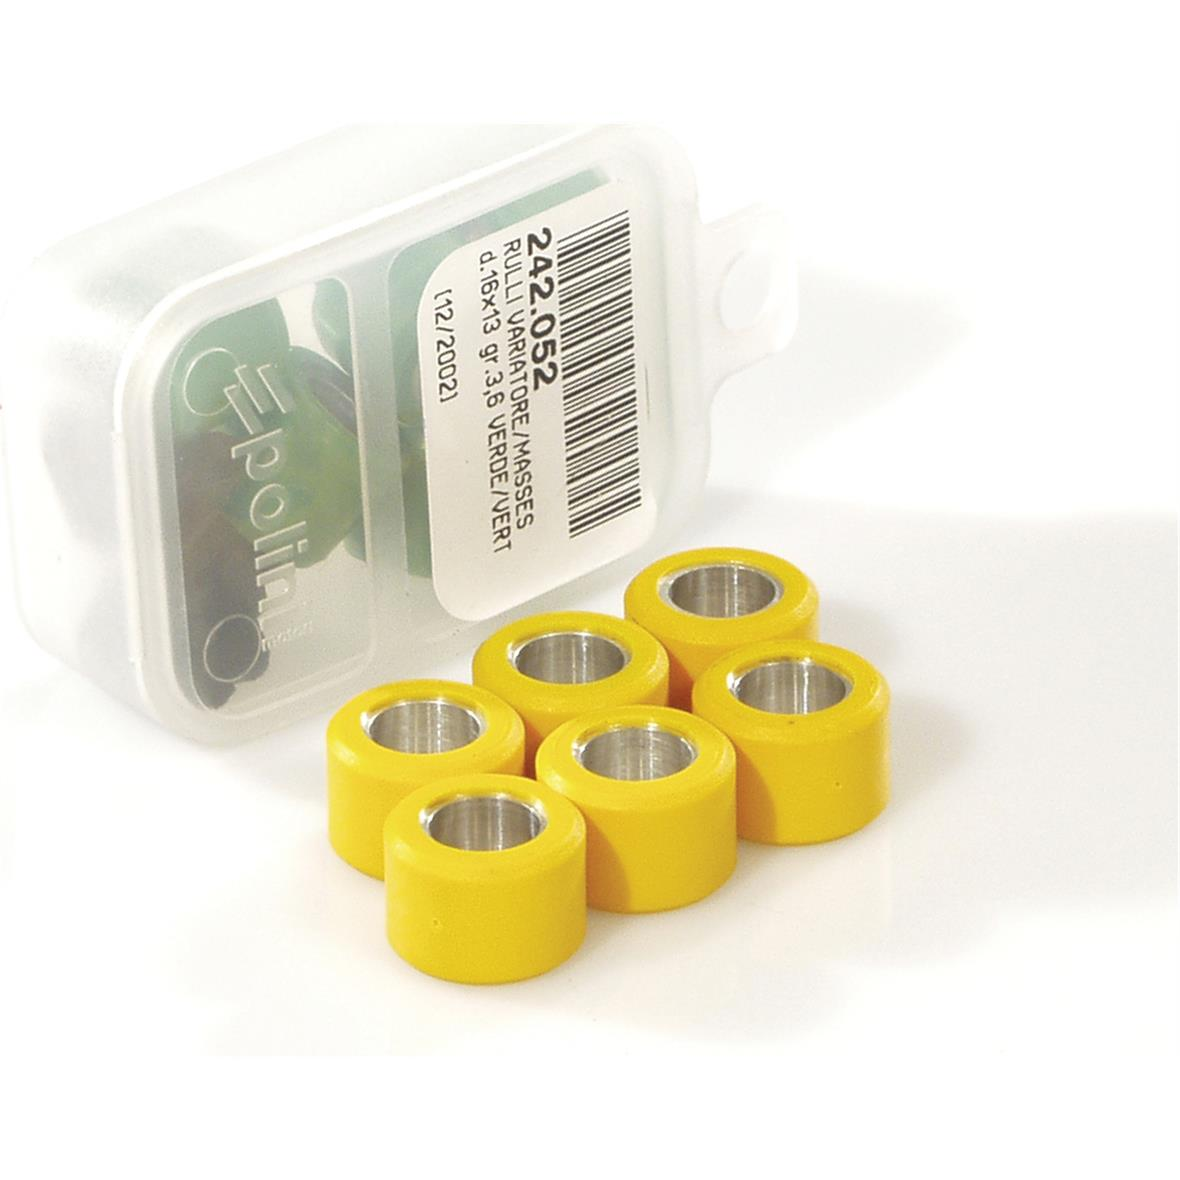 Product Image for 'Variator Rollers POLINI 15x12 mm 4,1gTitle'